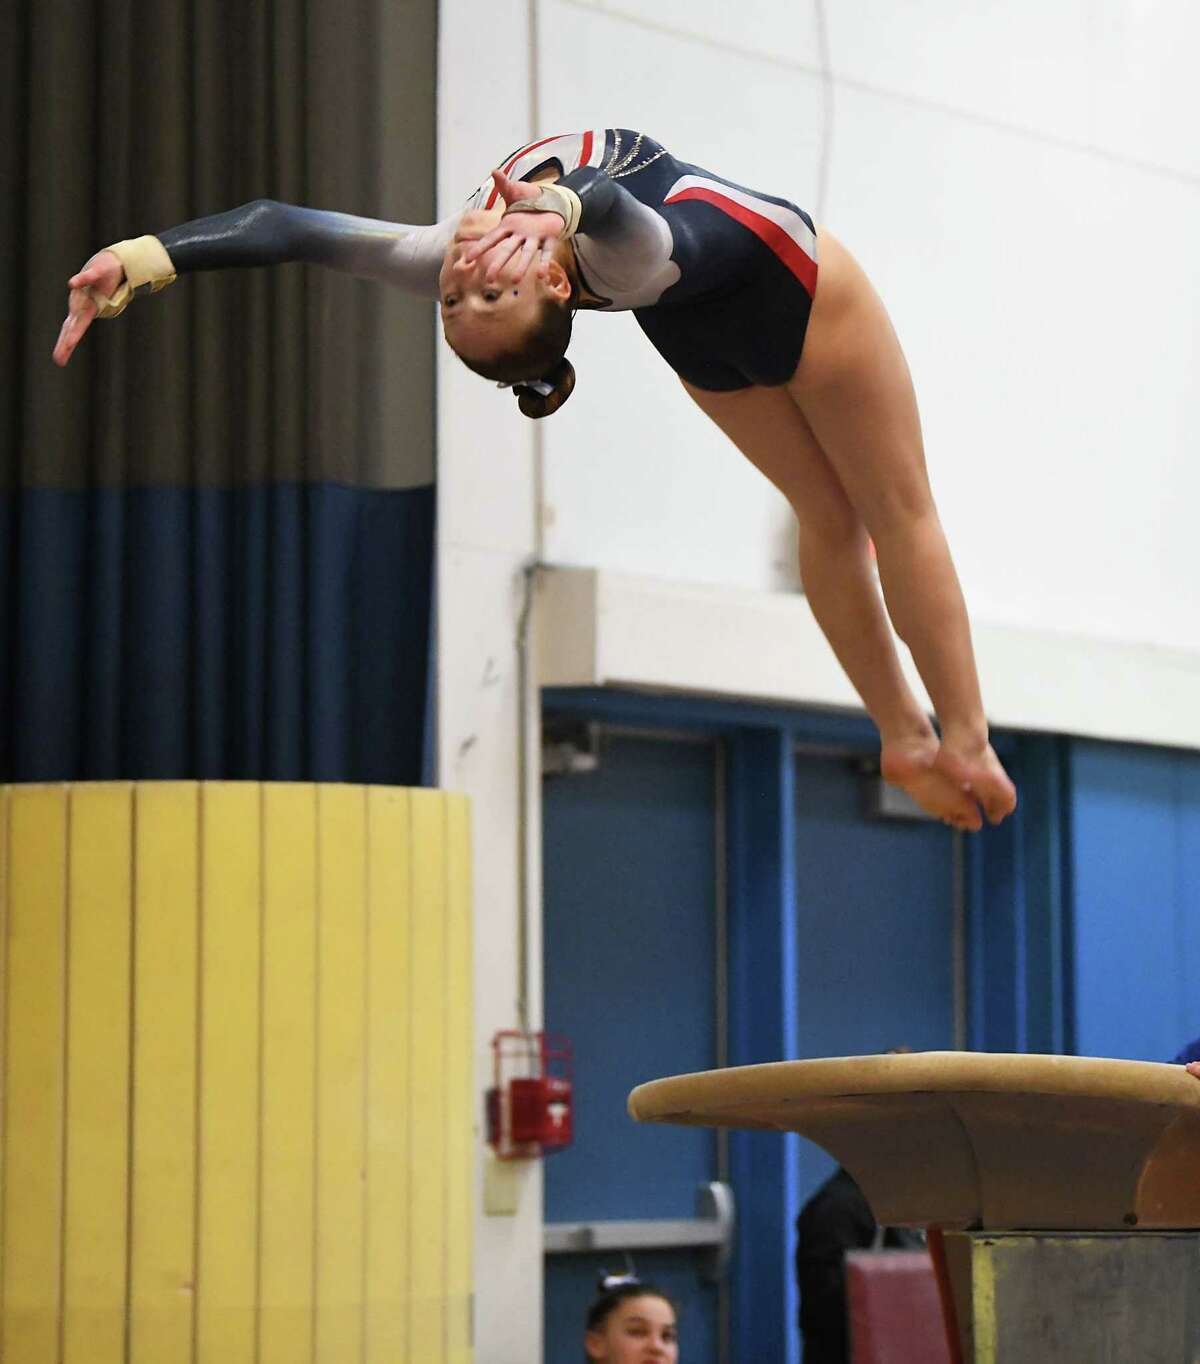 Saratoga's Ava Dallas competes in the vault during the Section II Gymnastics sectionals at Shaker High School on Wednesday, Feb. 12, 2020 in Latham, N.Y. (Lori Van Buren/Times Union)